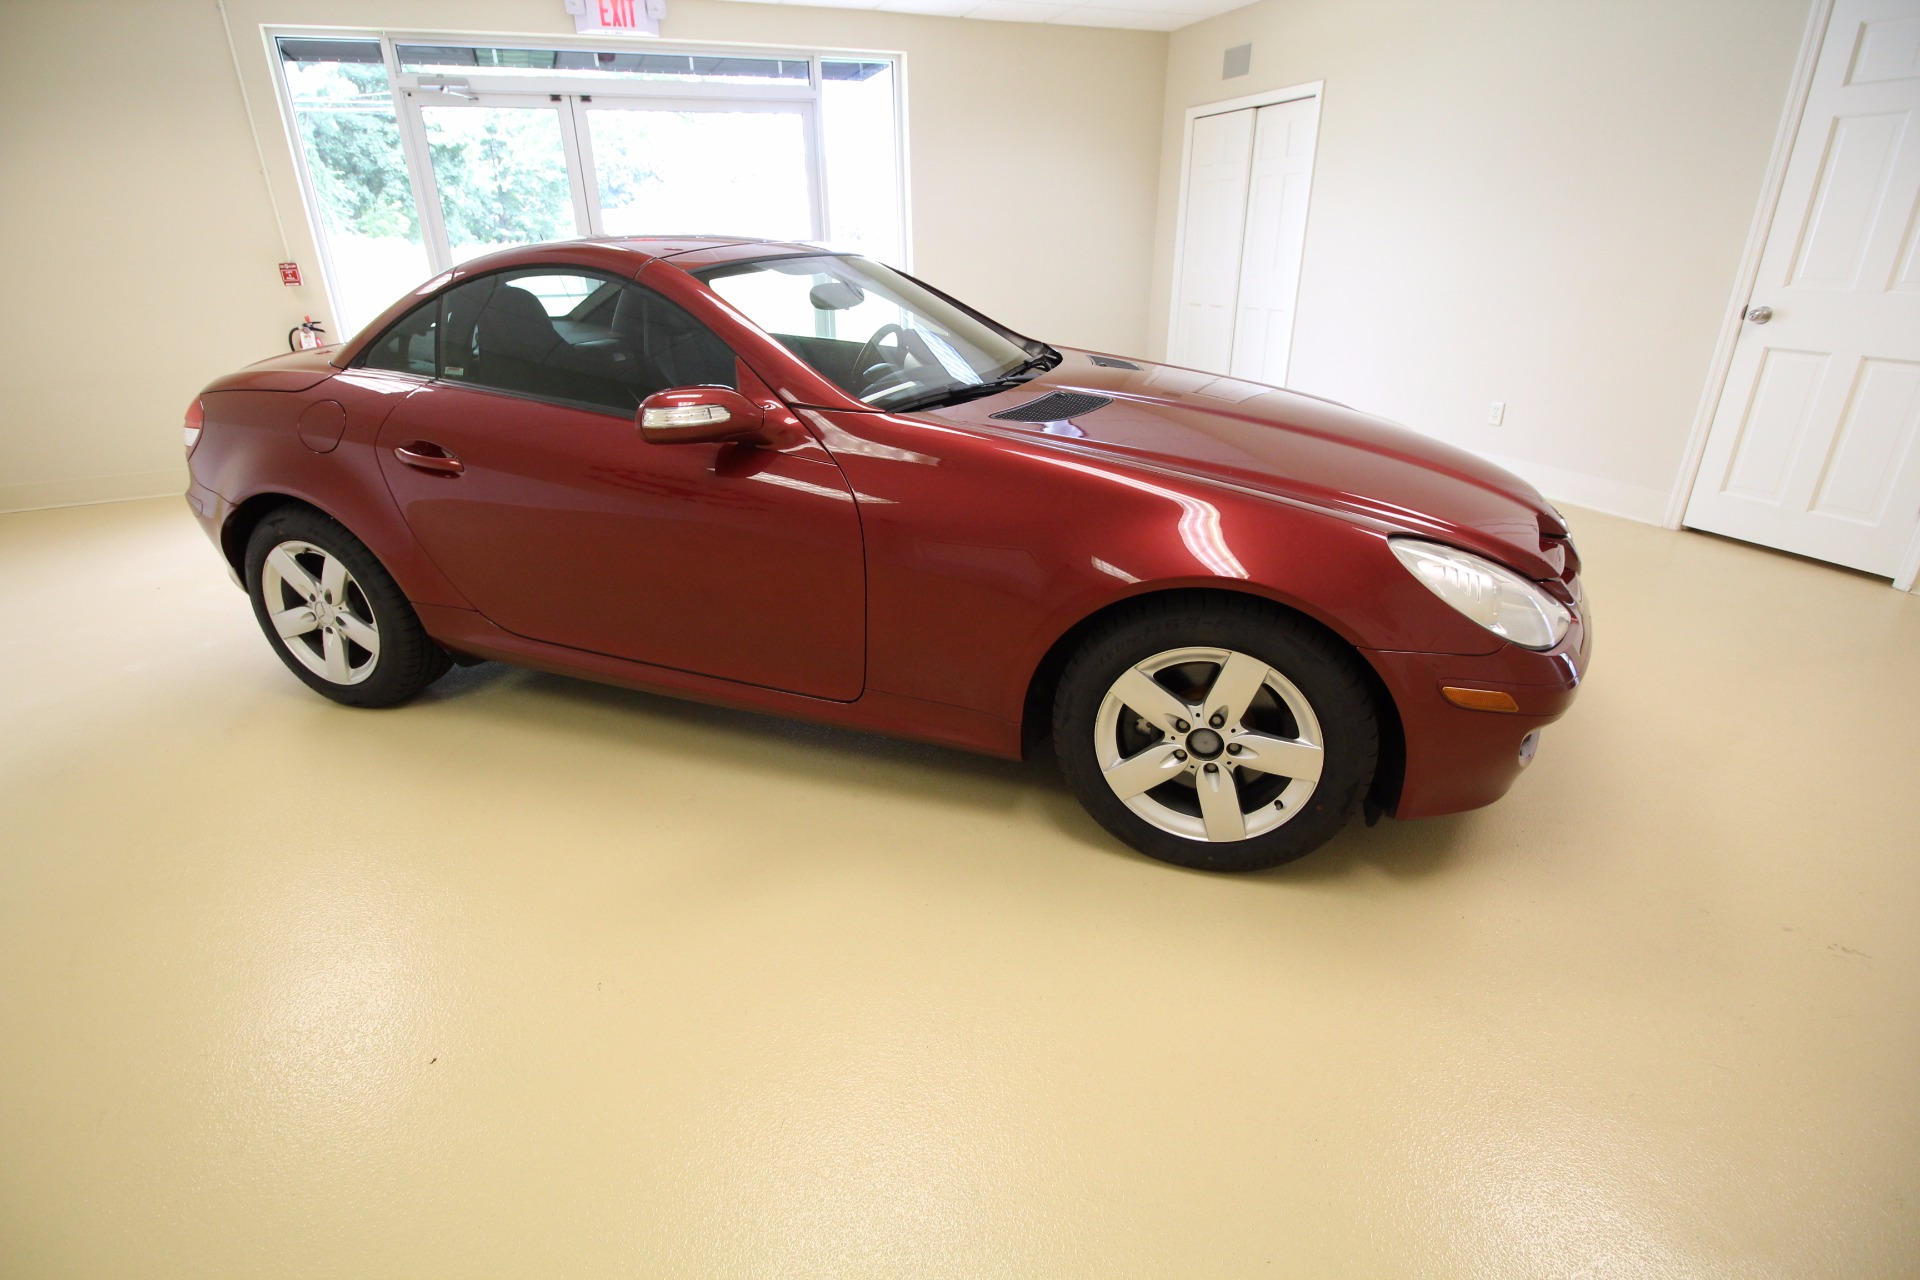 2006 mercedes benz slk slk280 stock 17144 for sale near for Mercedes benz slk 2006